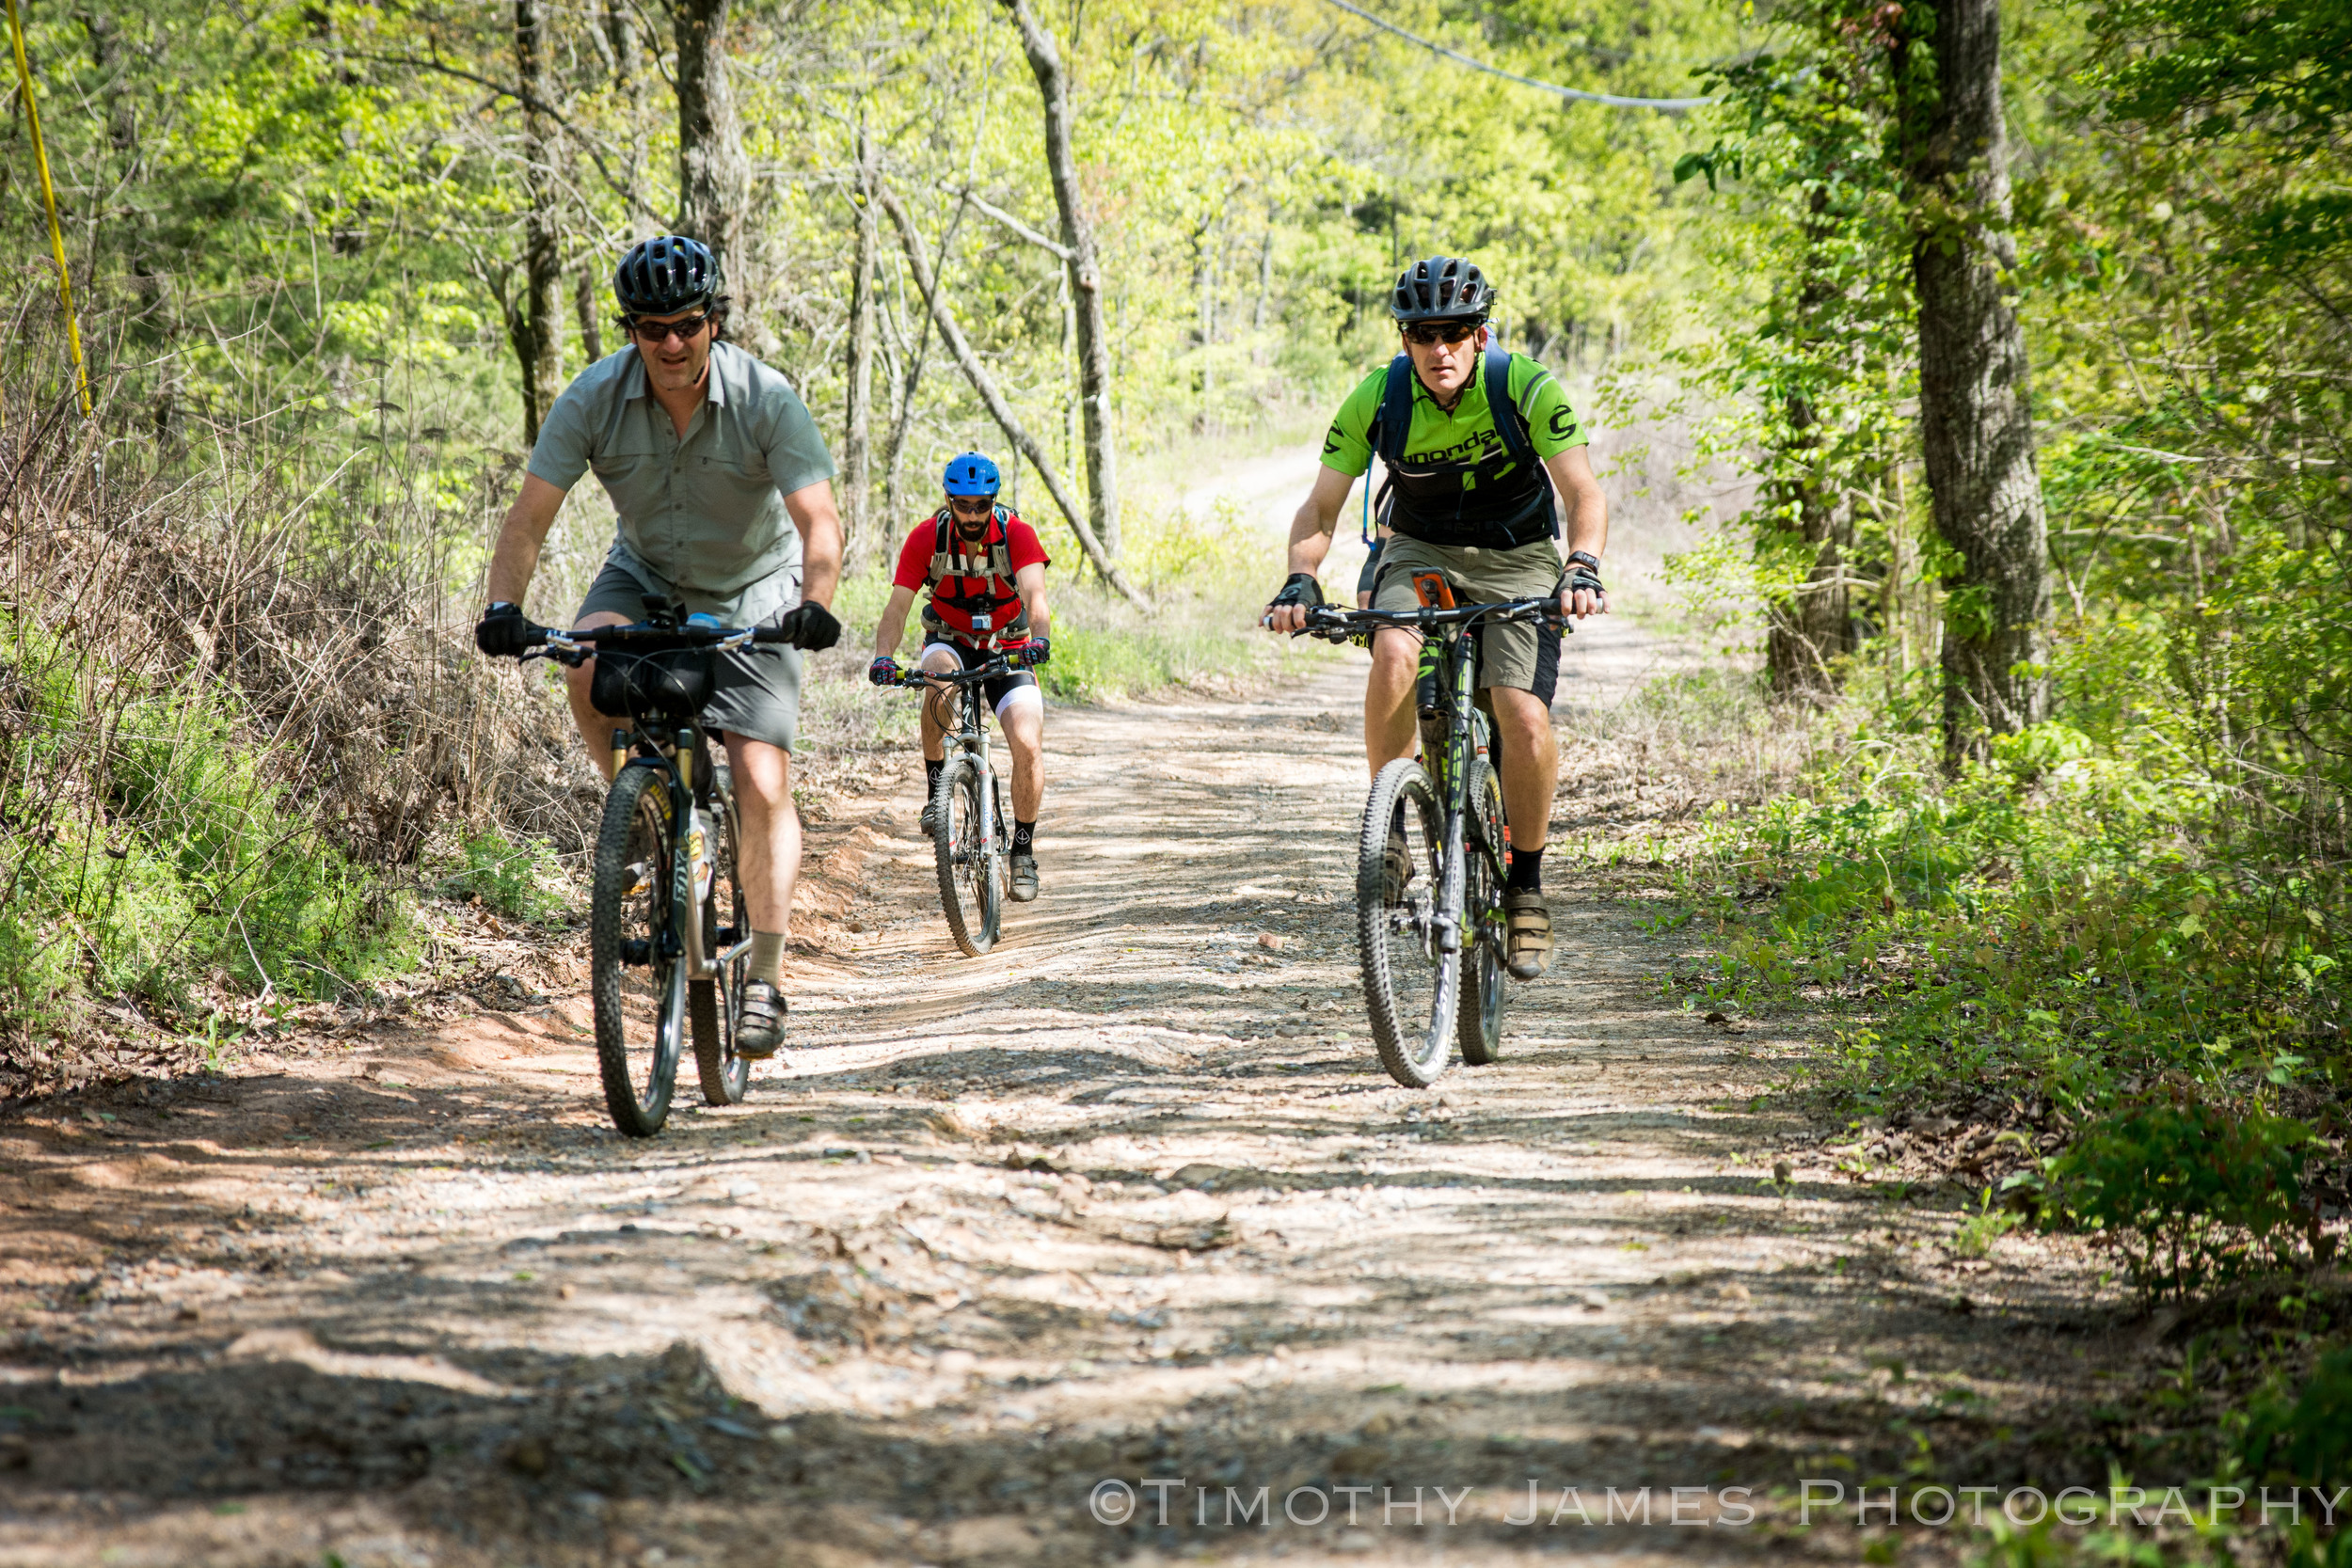 Come for the whole trip, a few days or a few hours. We just want to ride bikes with you. Photo: Timothy James Photography